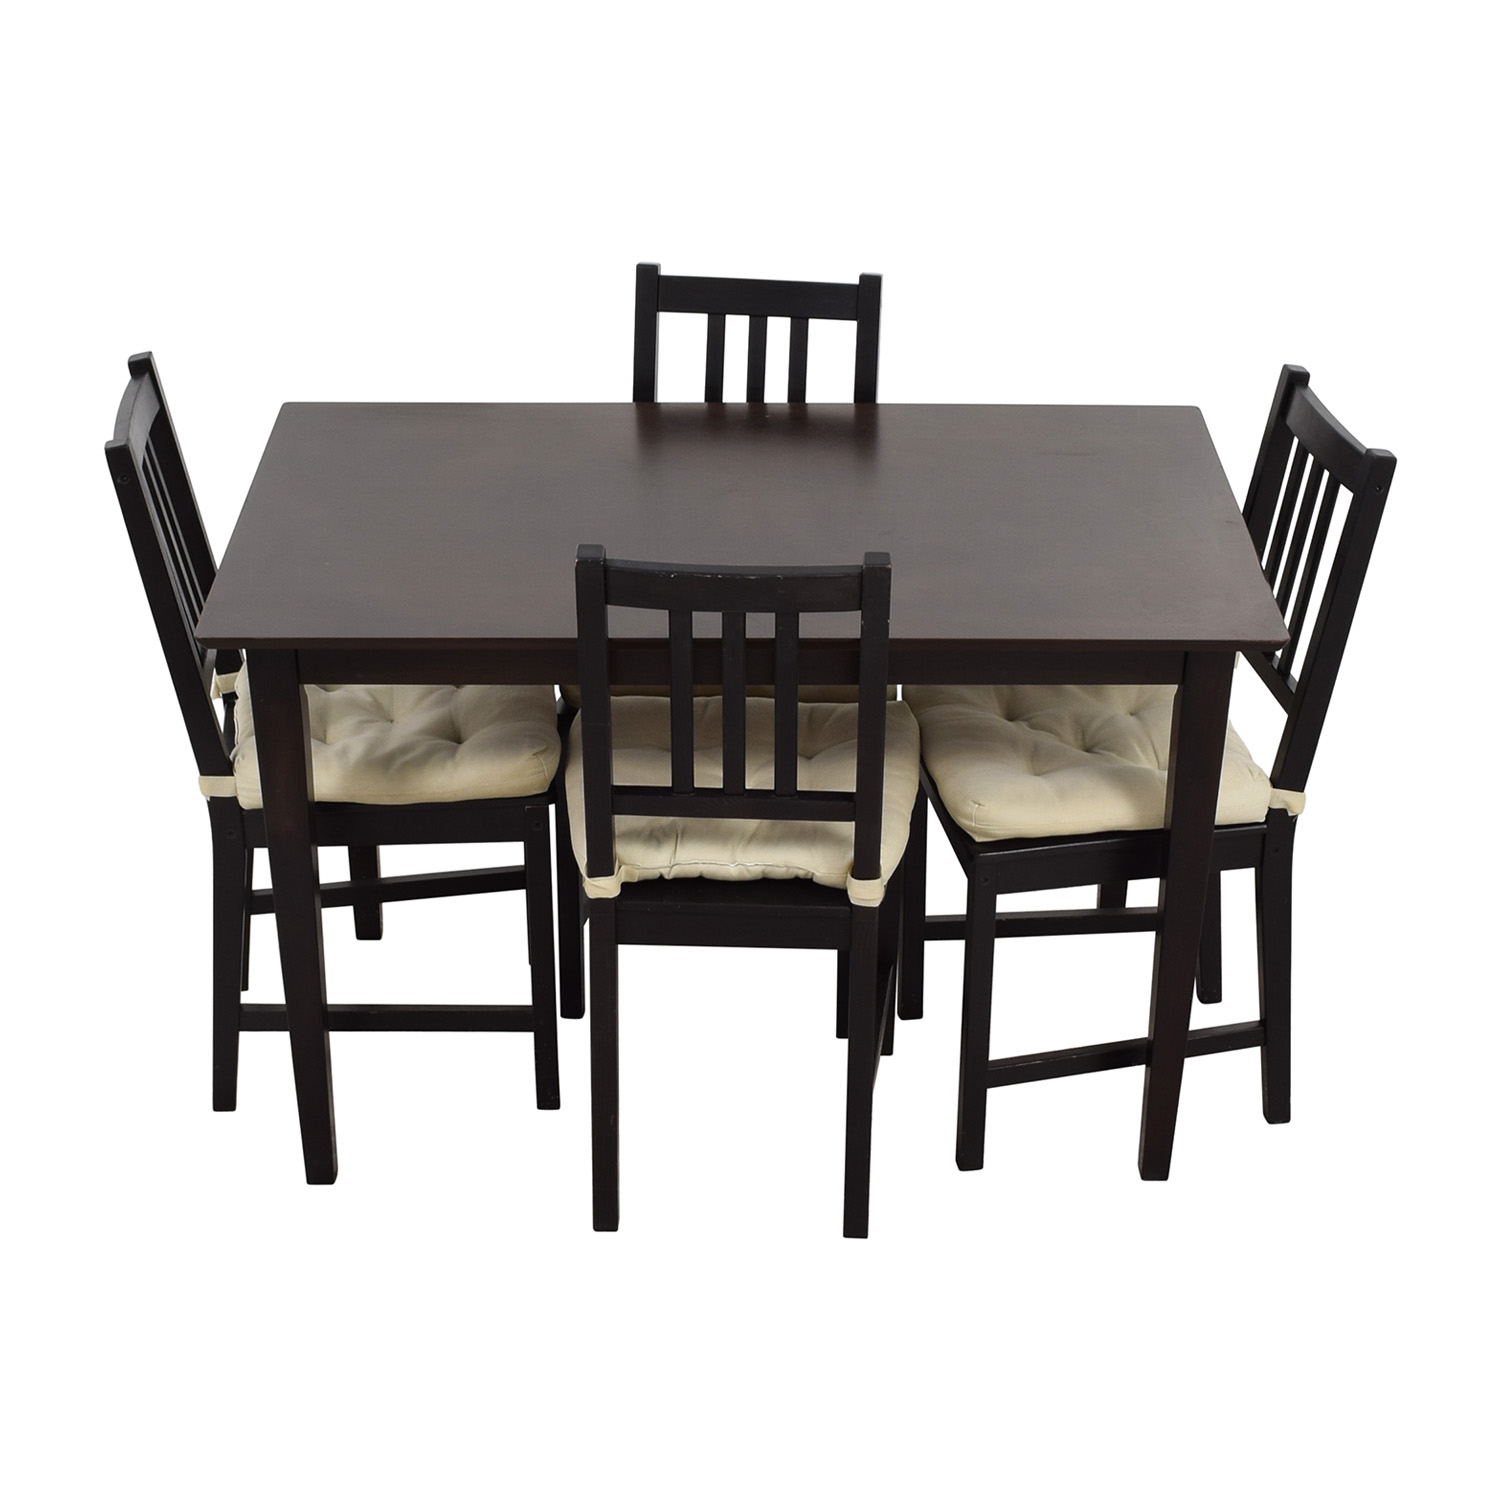 Dining Room Furniture Sets Ikea: IKEA IKEA Brown Wood Dining Set / Tables